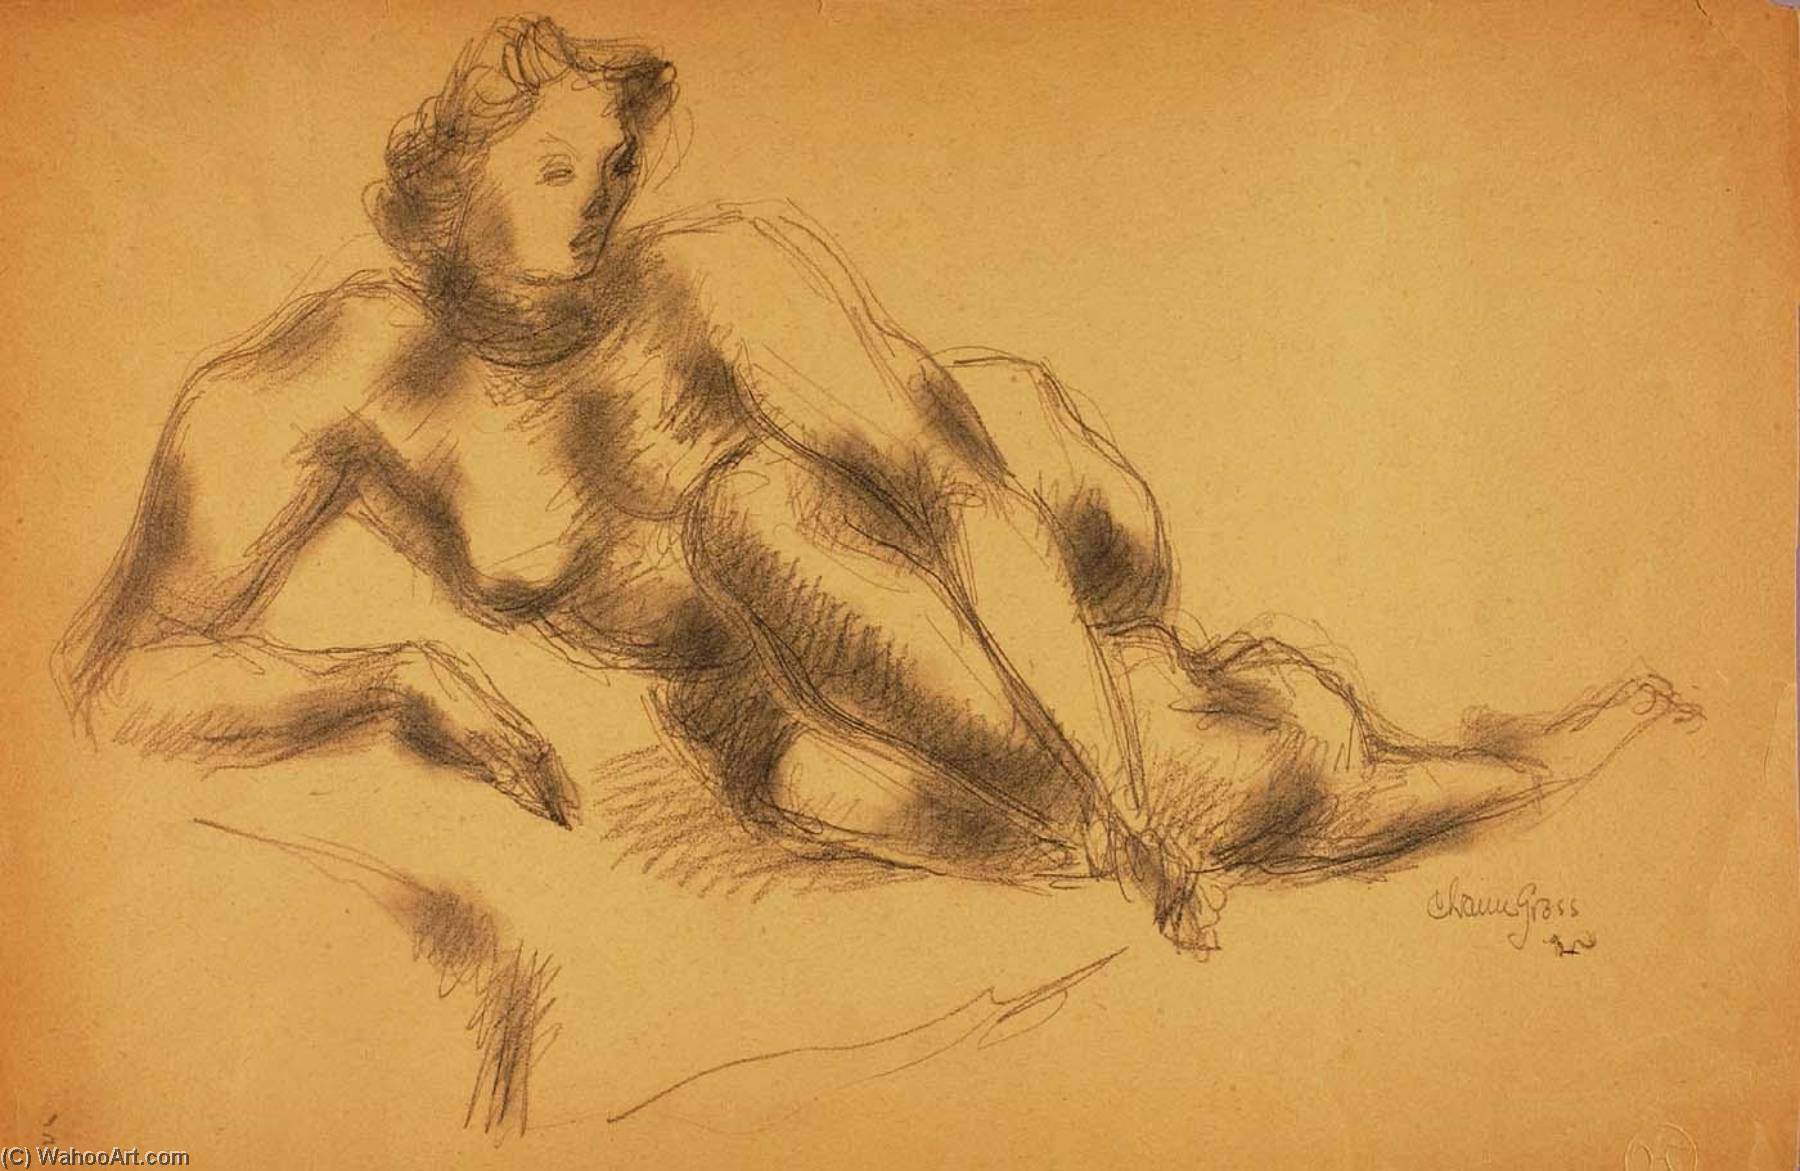 Untitled (female nude), Watercolour by Chaim Gross